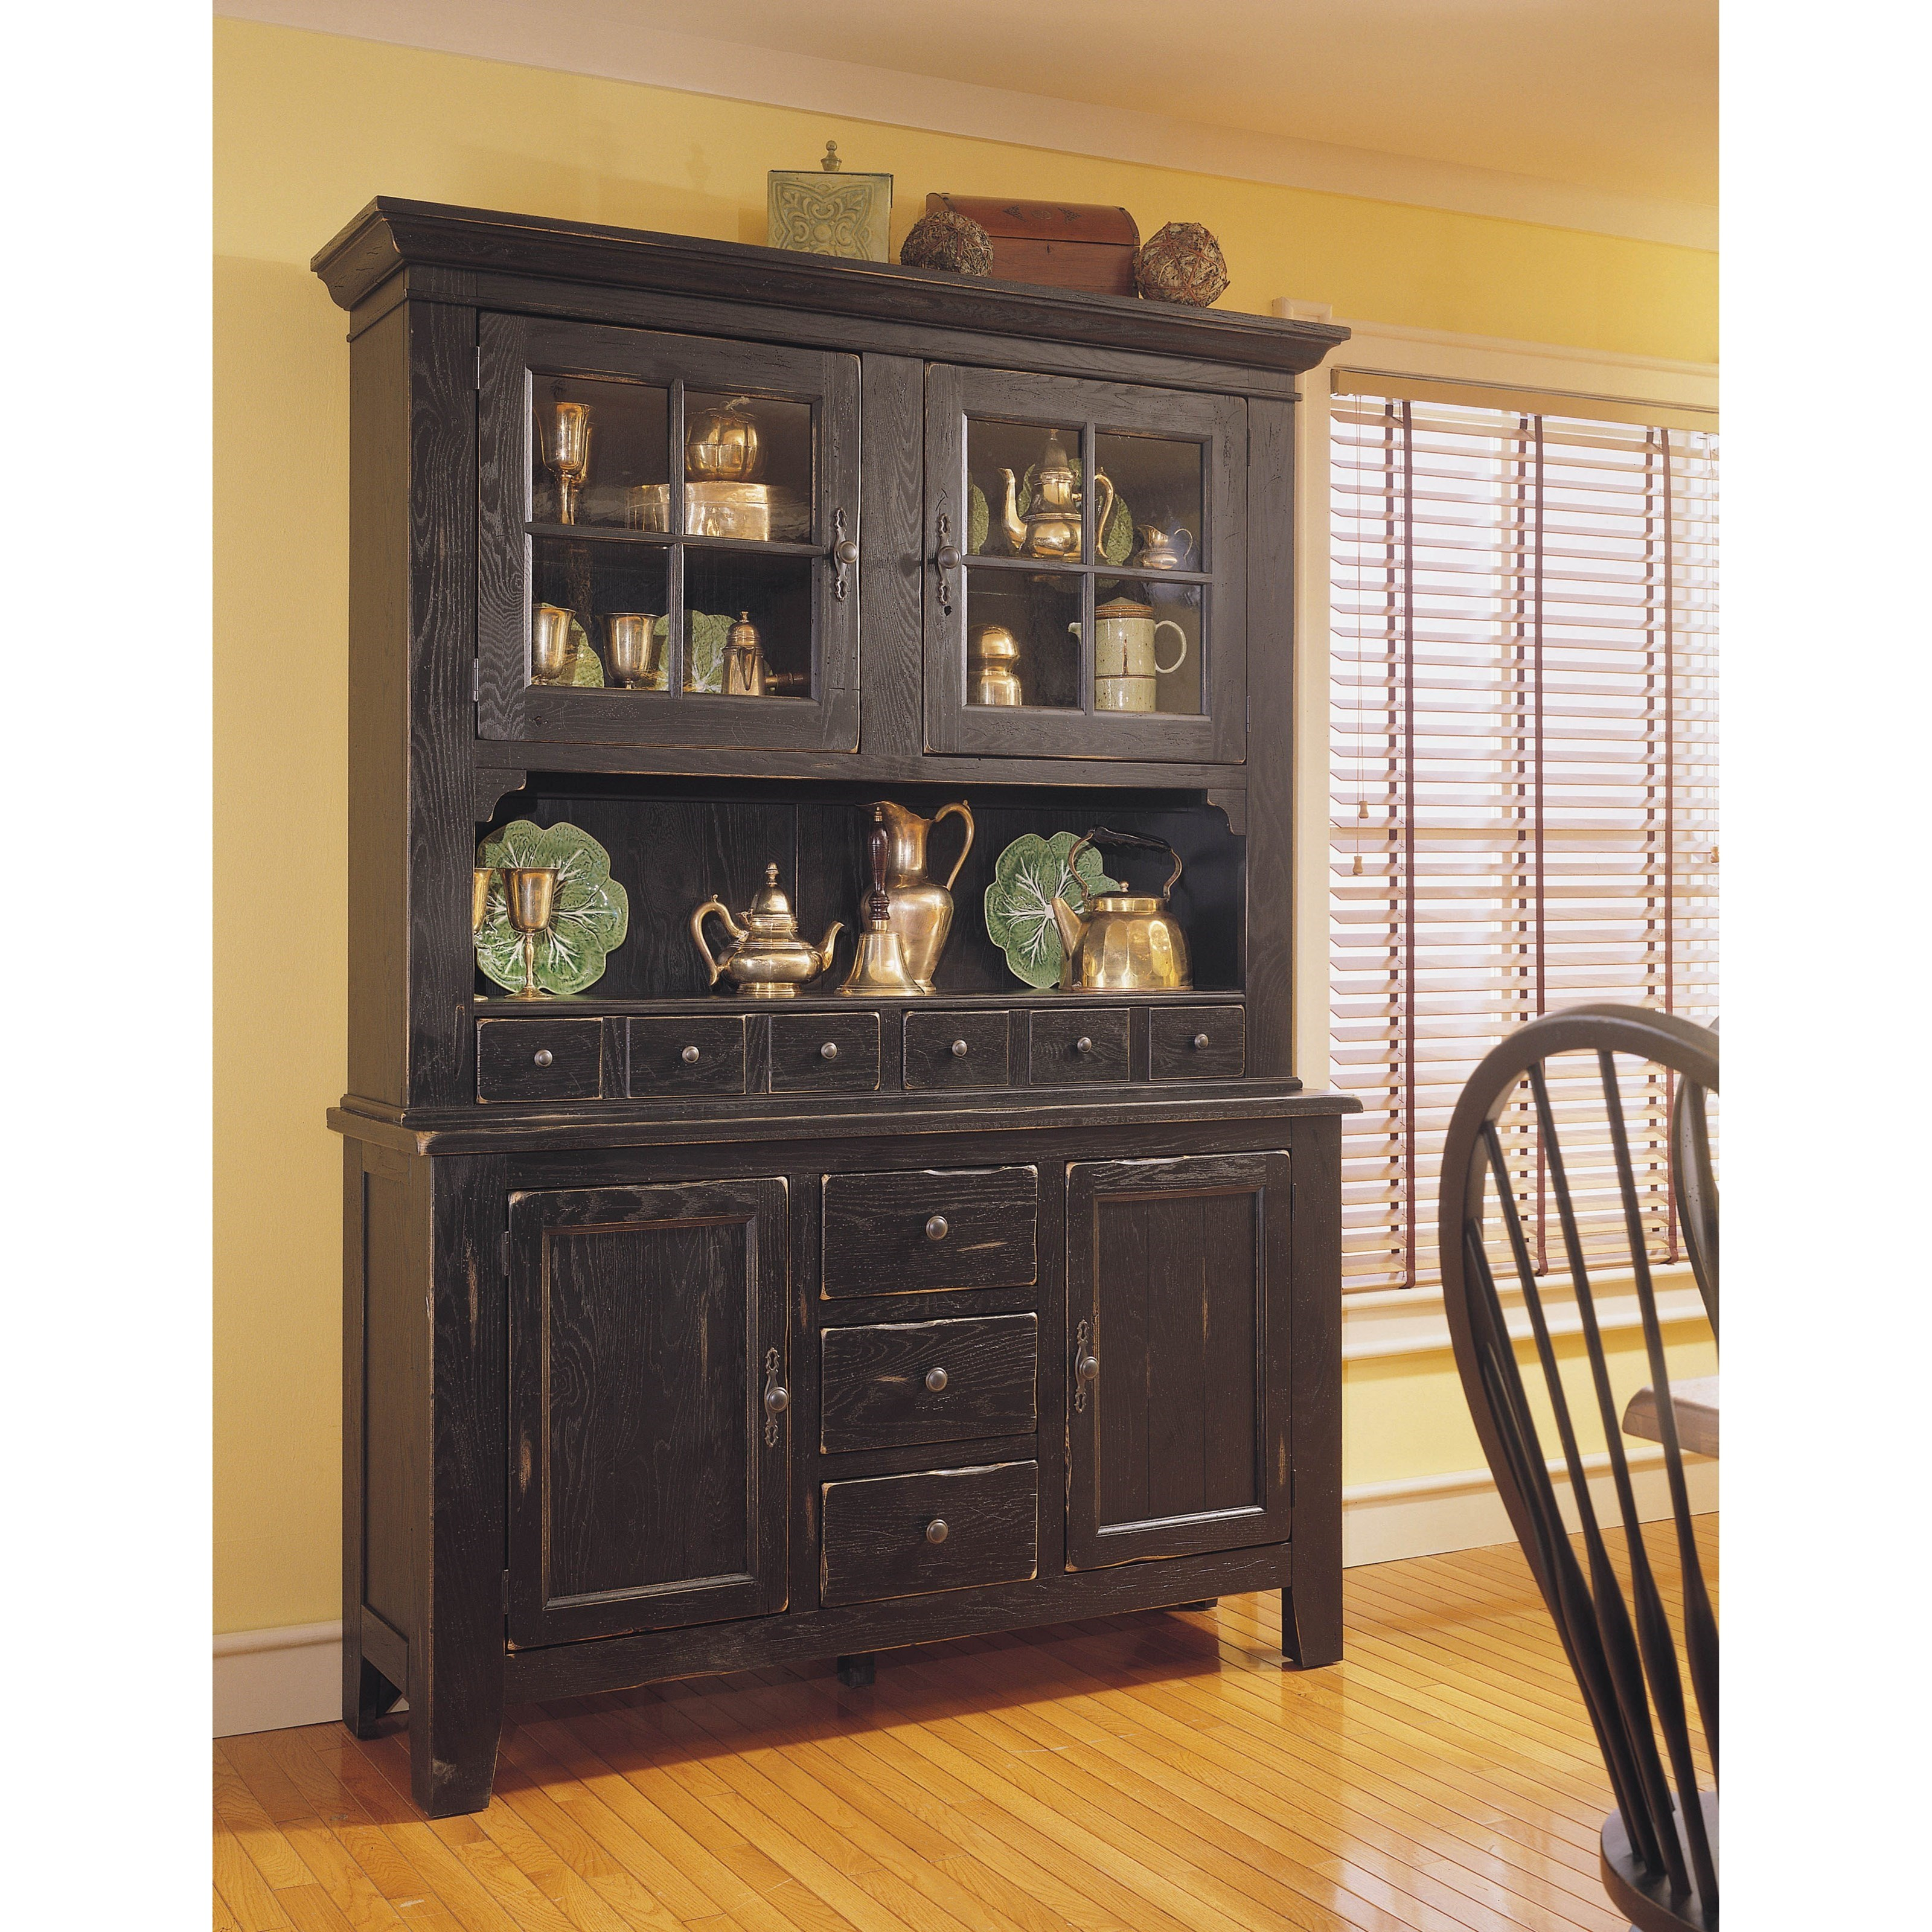 Broyhill Furniture Attic Heirlooms China Hutch and Base ...